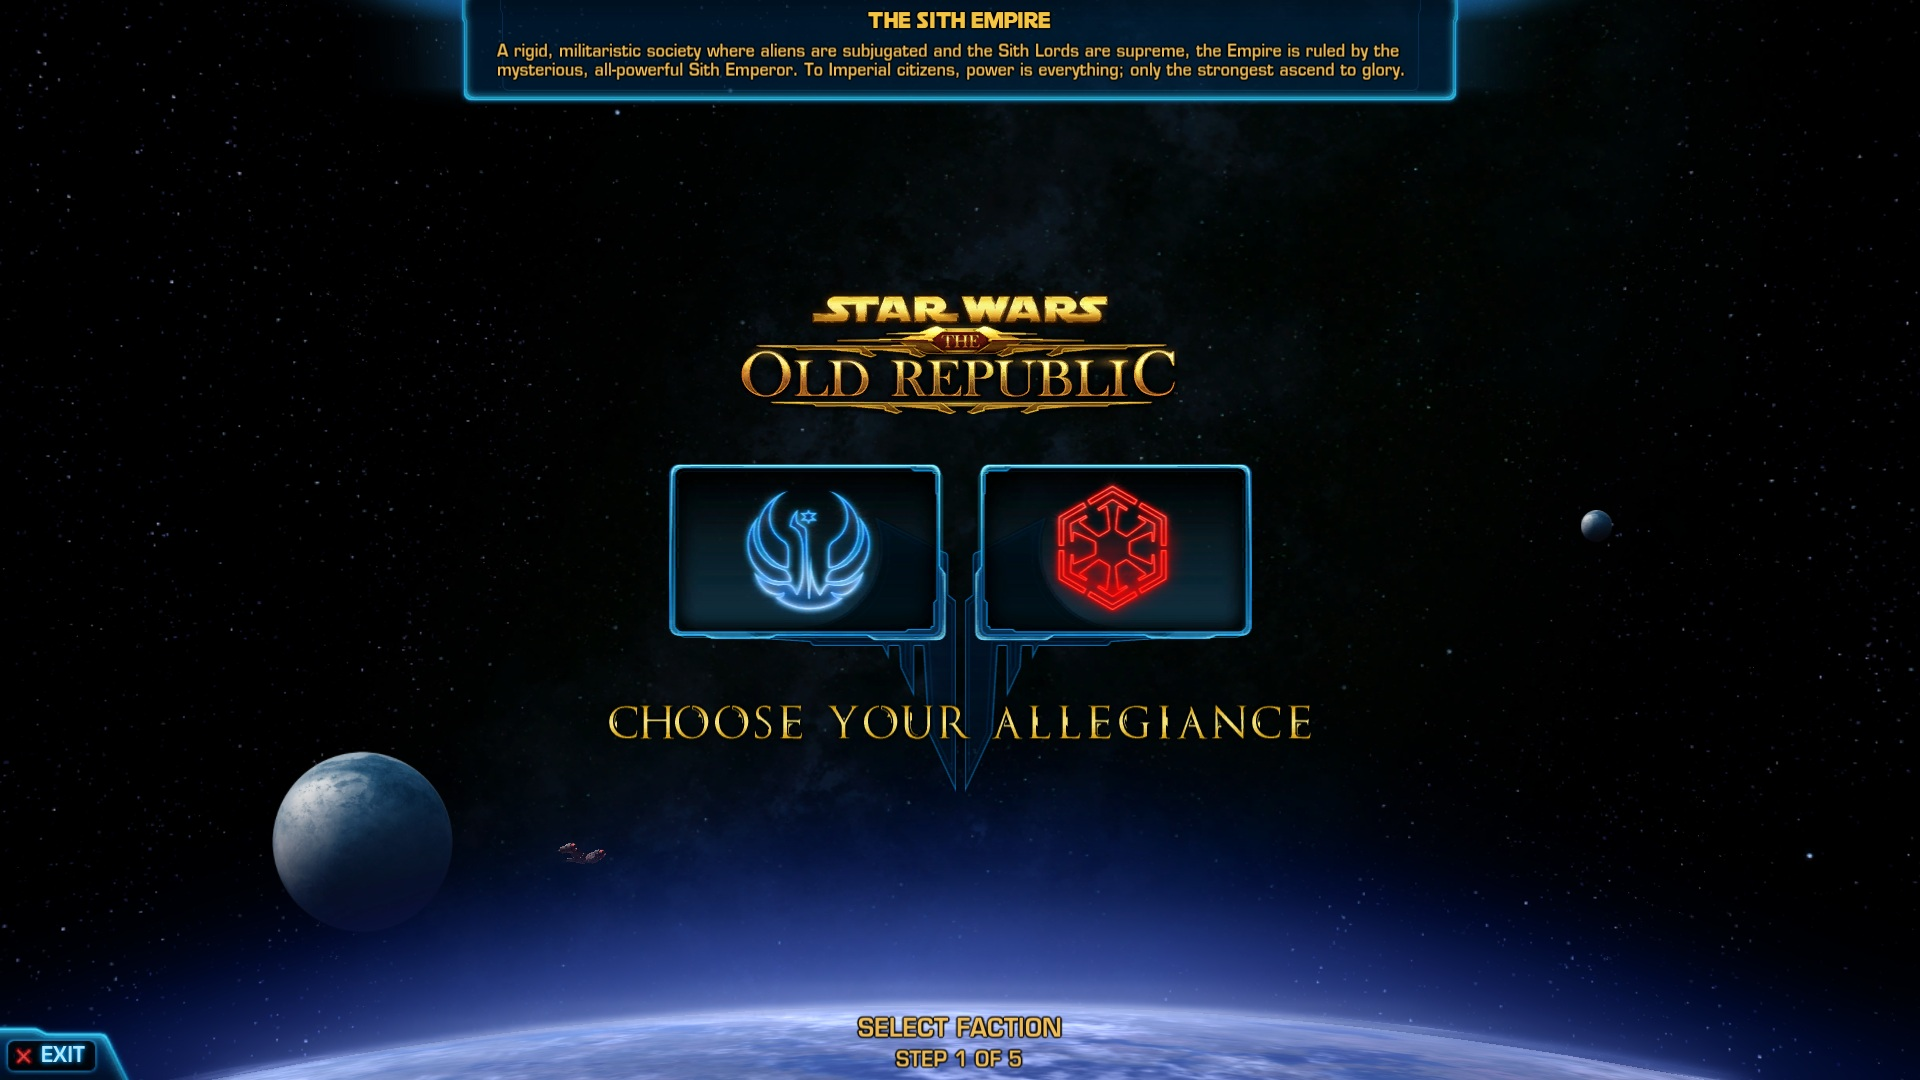 swtor 2011-11-26 05-28-27-52.jpg - Star Wars: The Old Republic